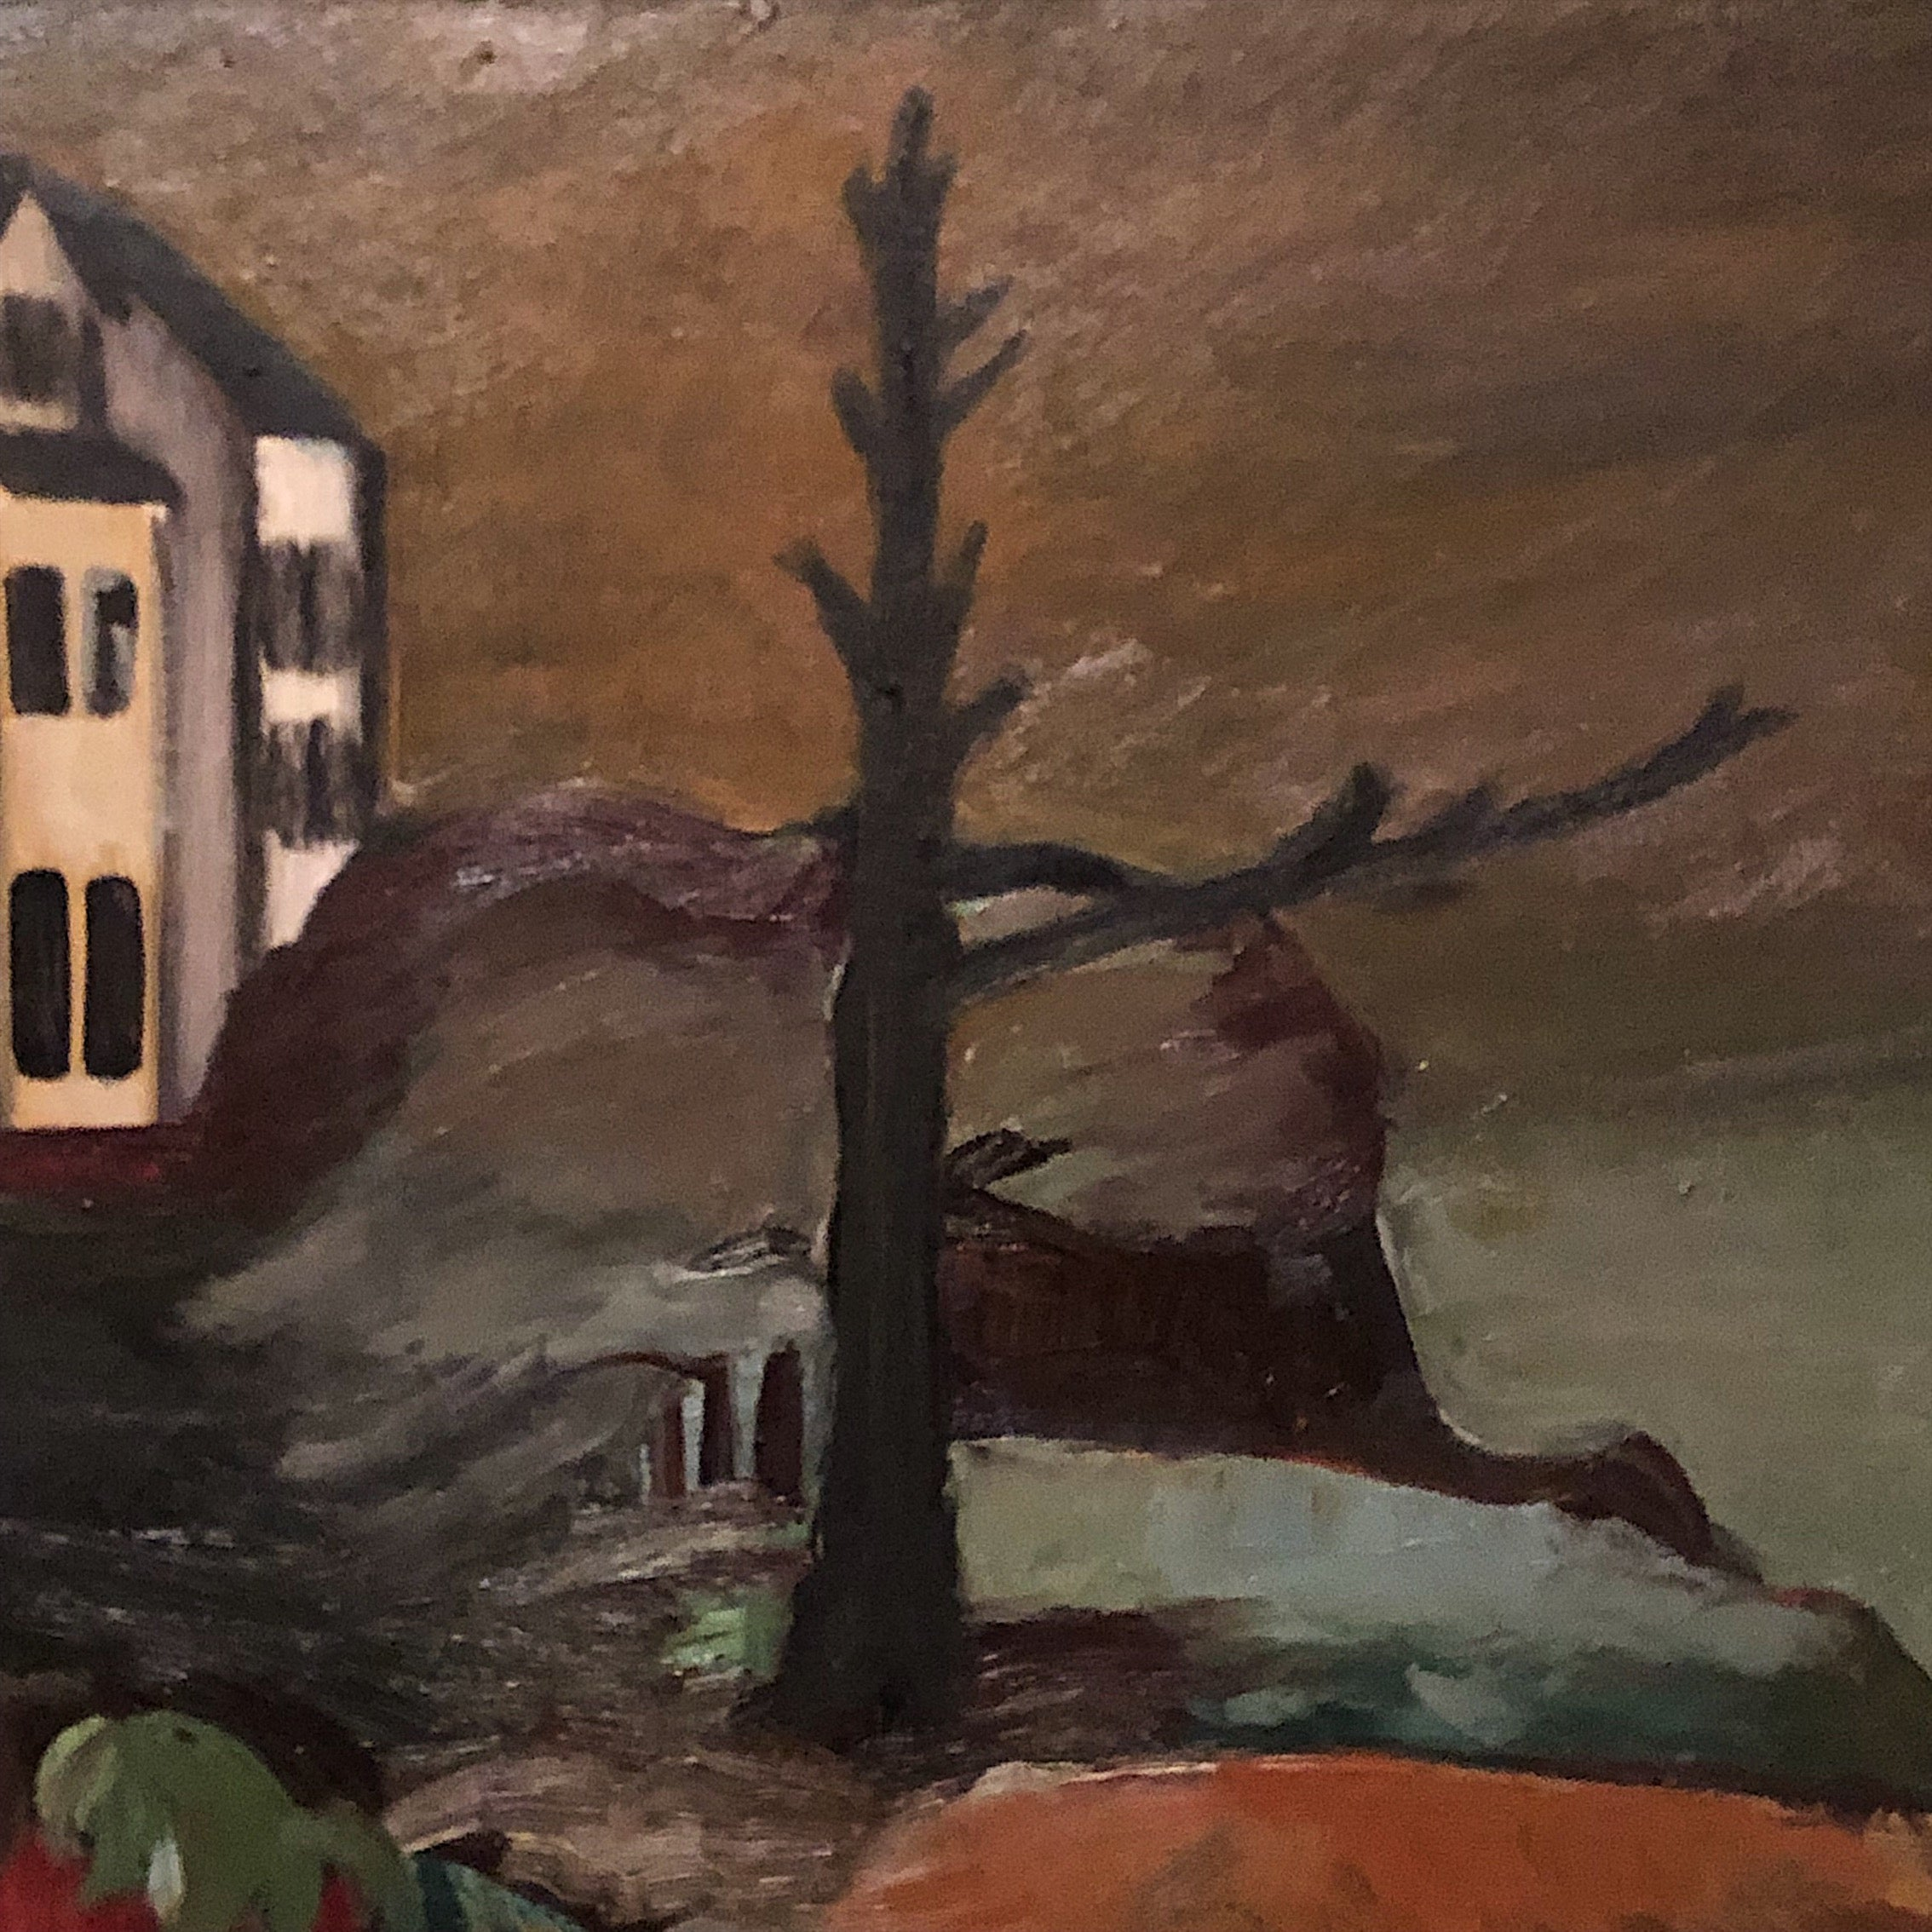 WPA Era Painting of Waterfront Landscape - New Deal - Large Oil on Canvas - Depression Era - 43 x 29